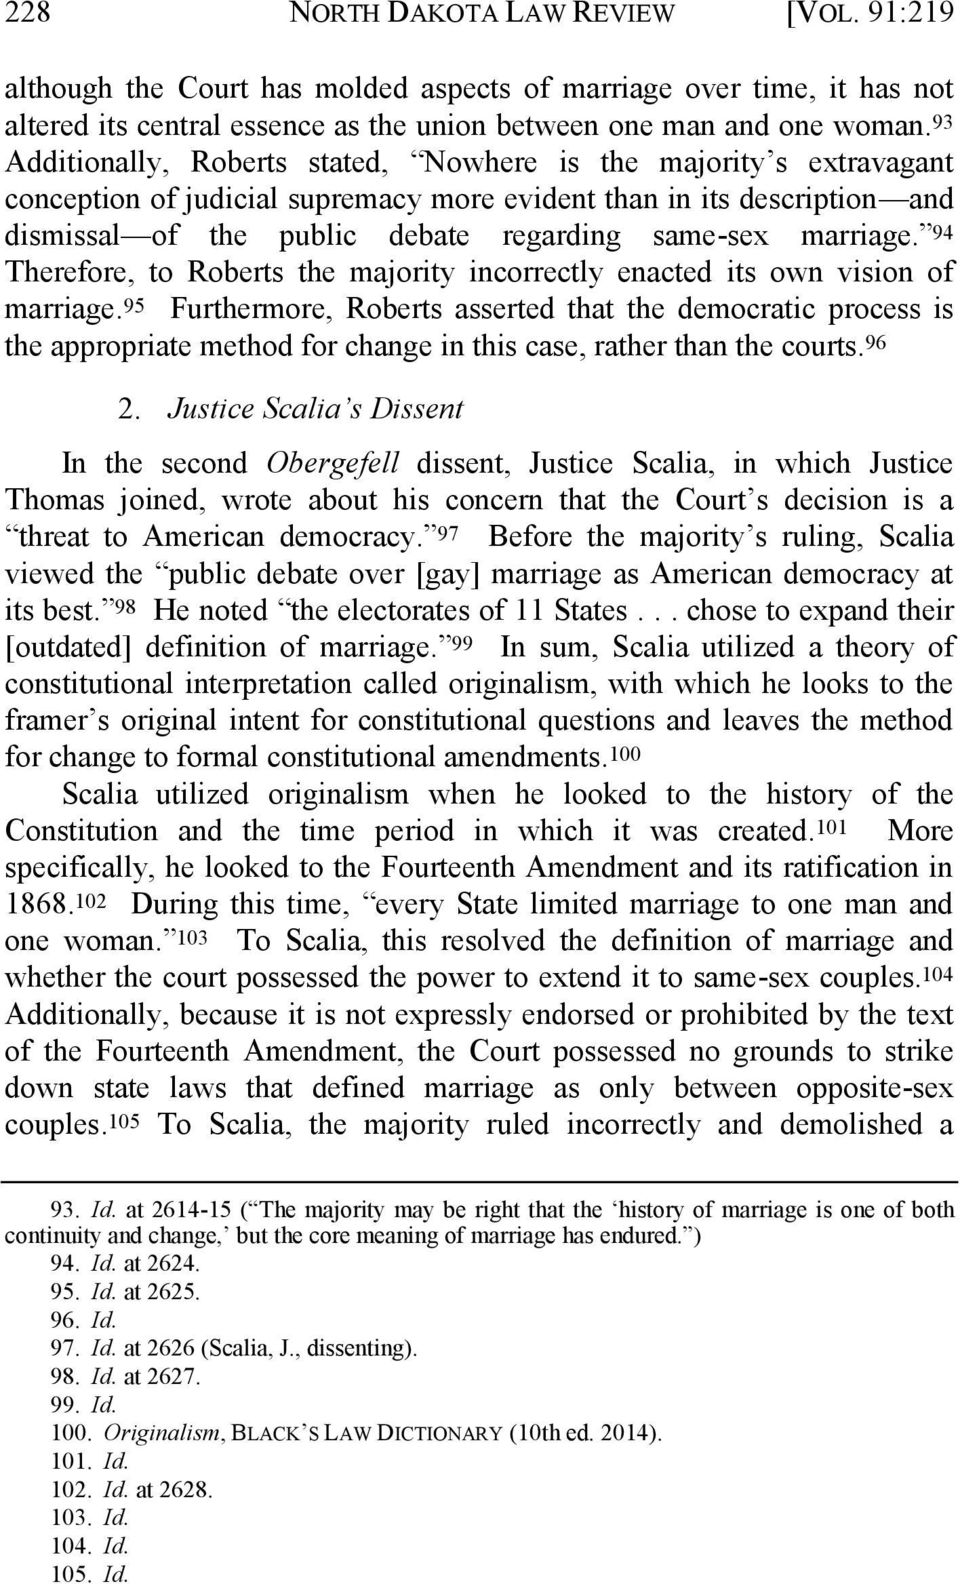 marriage. 94 Therefore, to Roberts the majority incorrectly enacted its own vision of marriage.